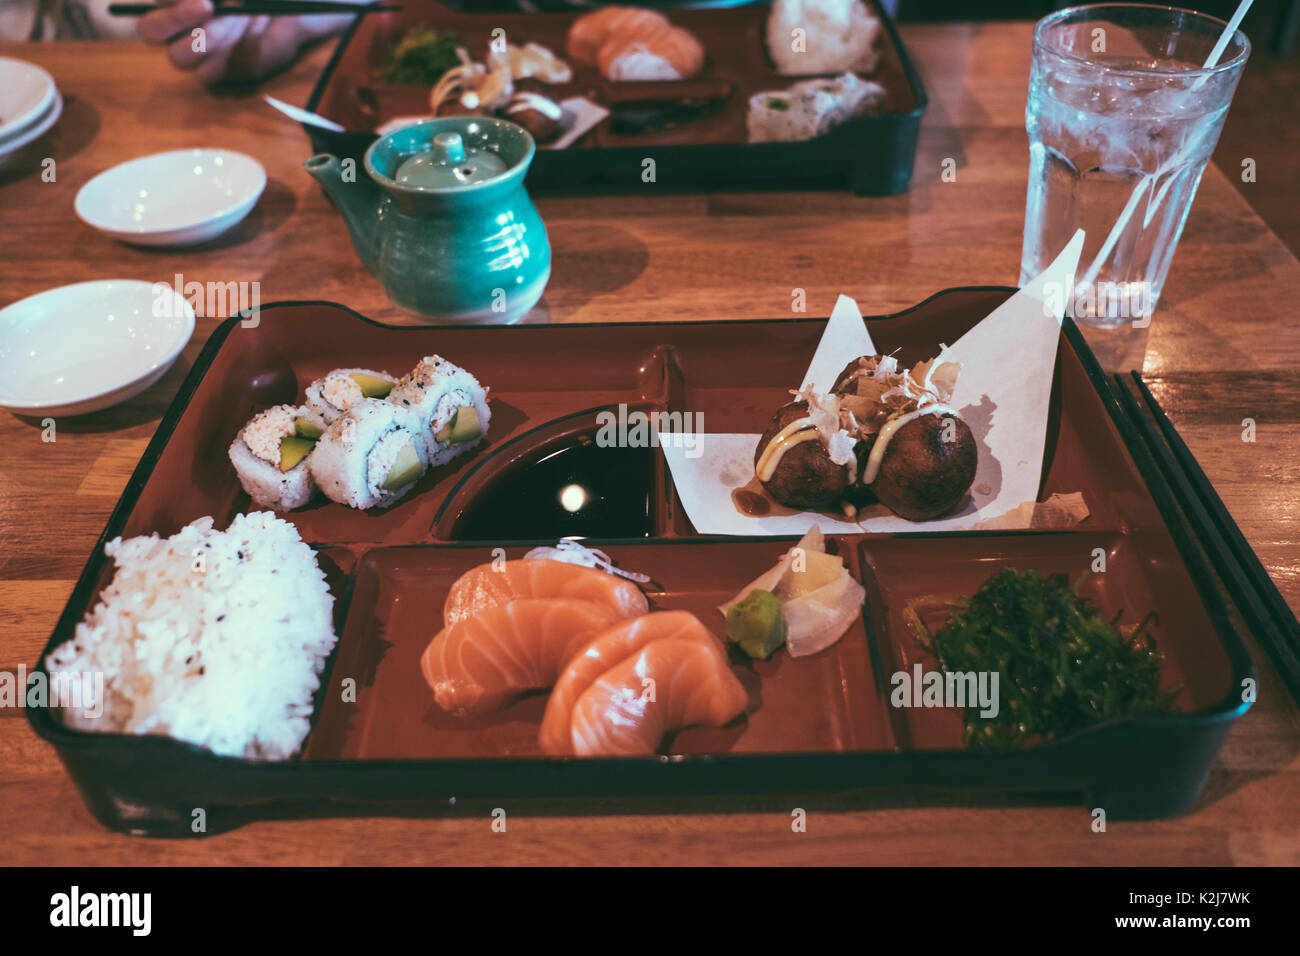 lunch box america stock photos lunch box america stock images alamy. Black Bedroom Furniture Sets. Home Design Ideas